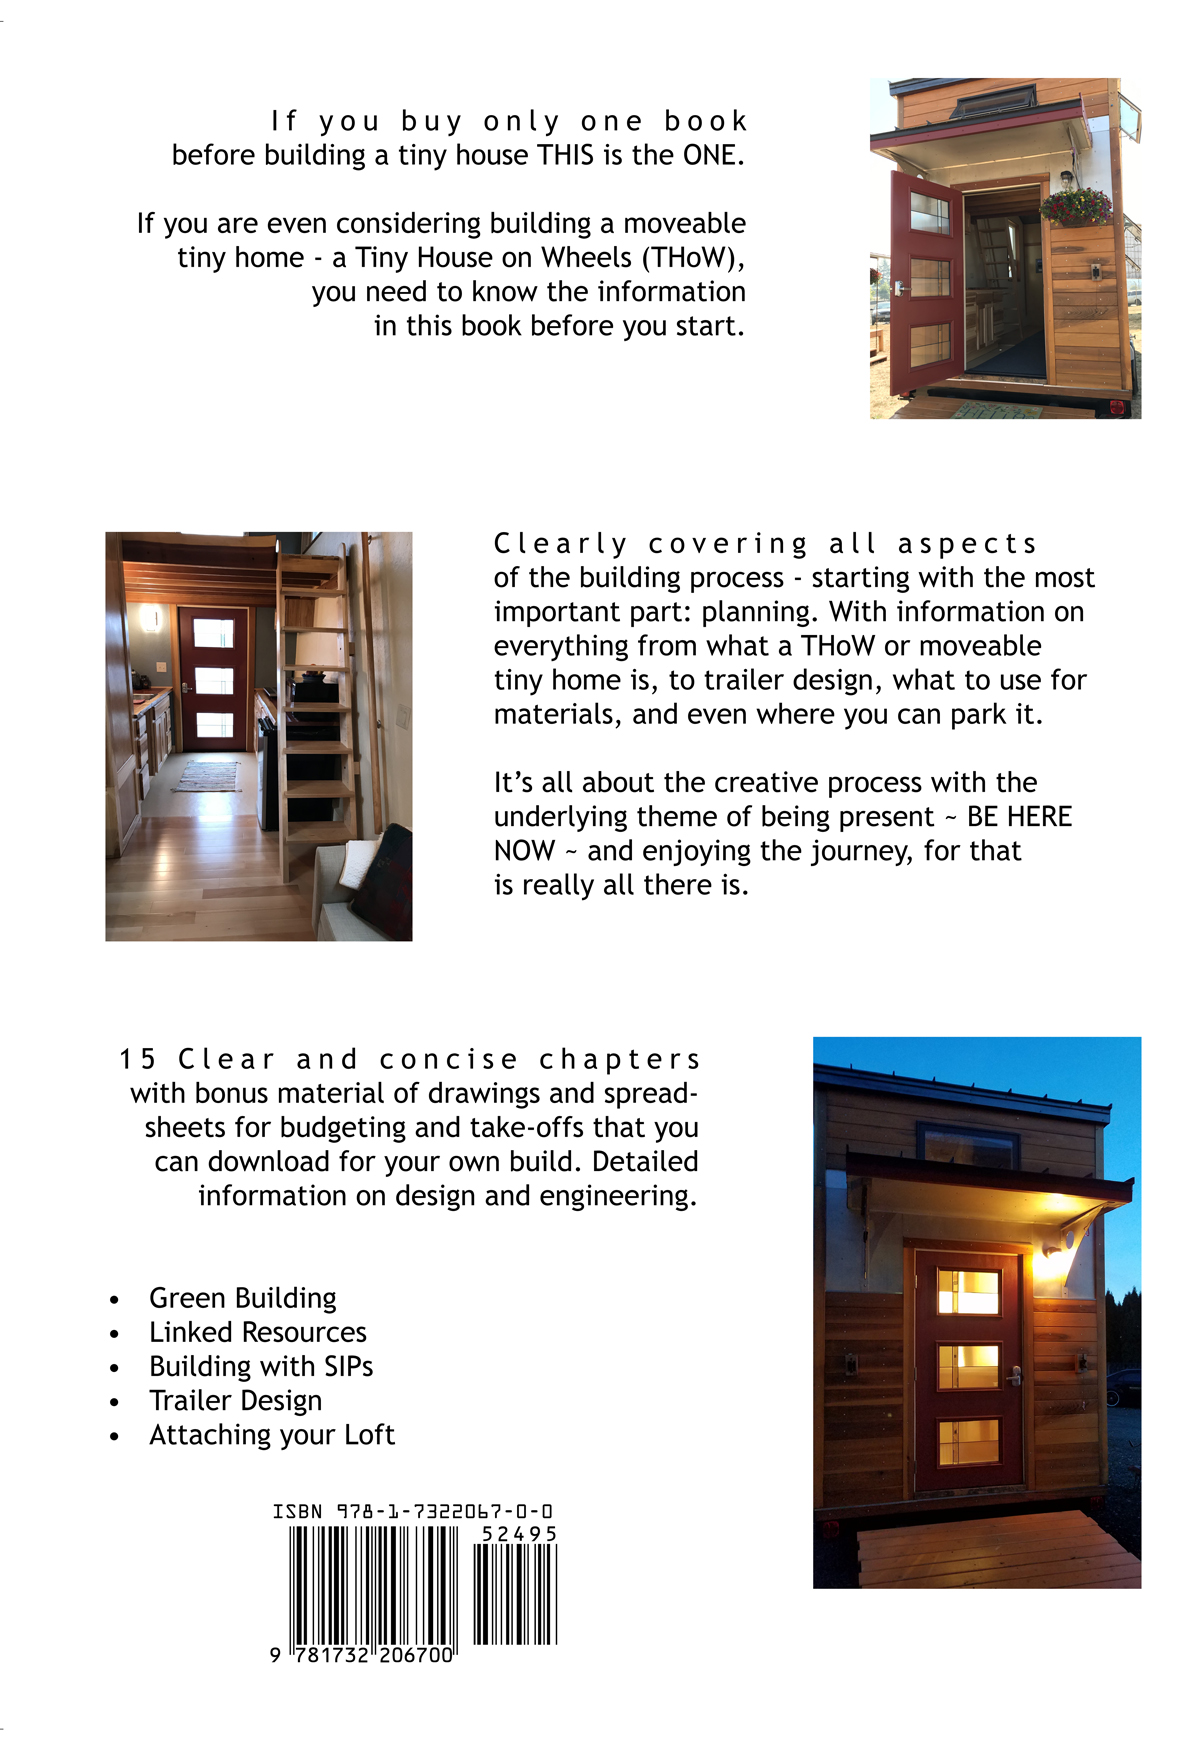 Building Your Moveable Tiny House with Mindfulness   Artisan Tiny House